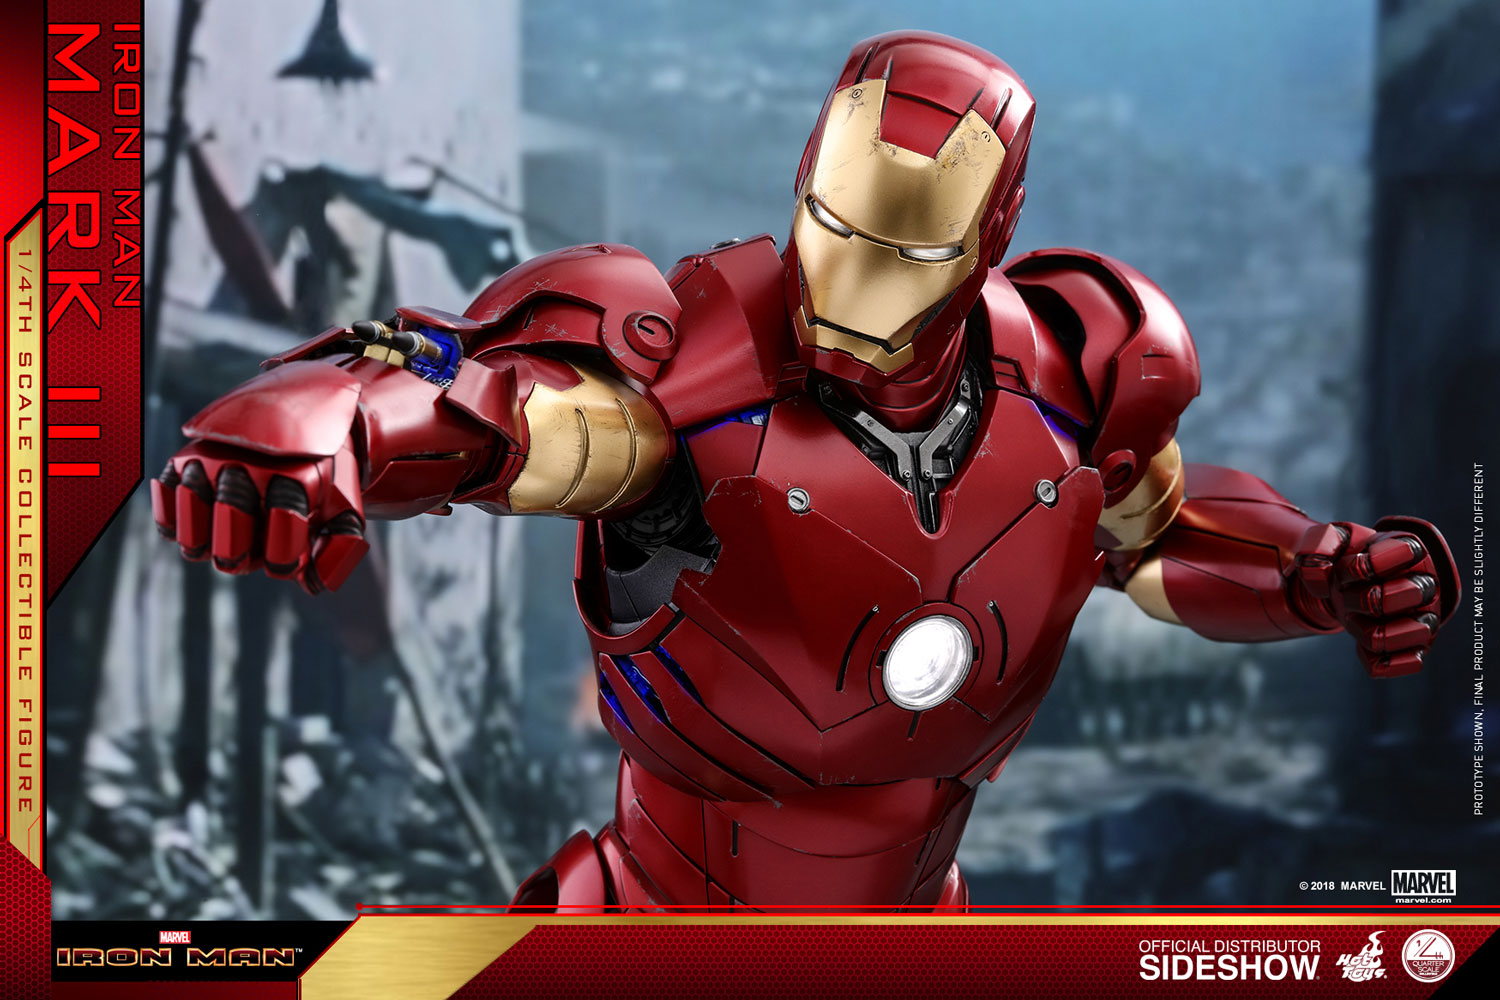 marvel iron man mark iii quarter scale figure by hot toys sideshow collectibles. Black Bedroom Furniture Sets. Home Design Ideas